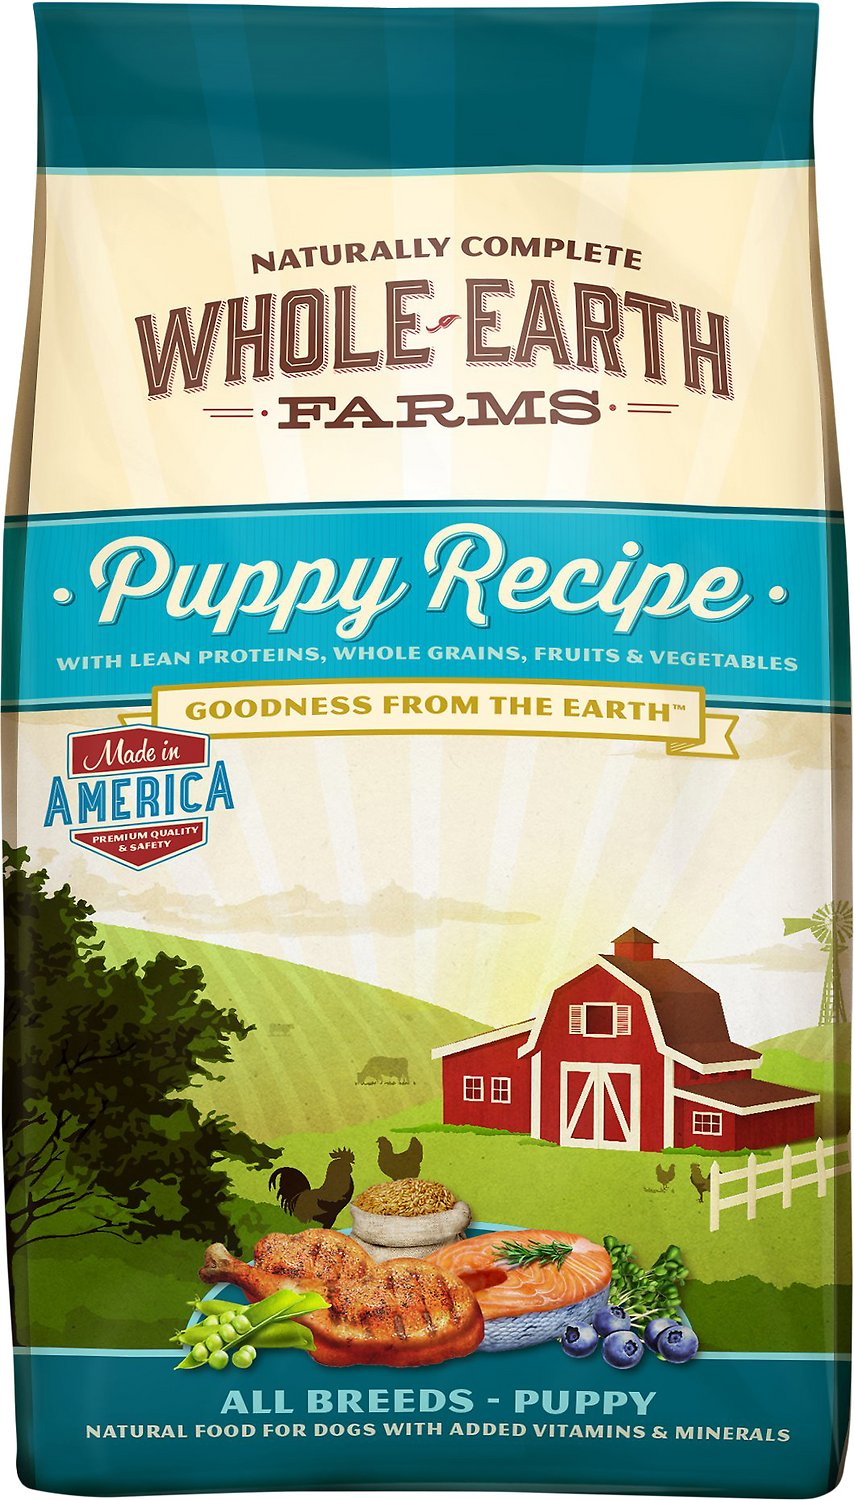 Whole Earth Farms Puppy Food Reviews